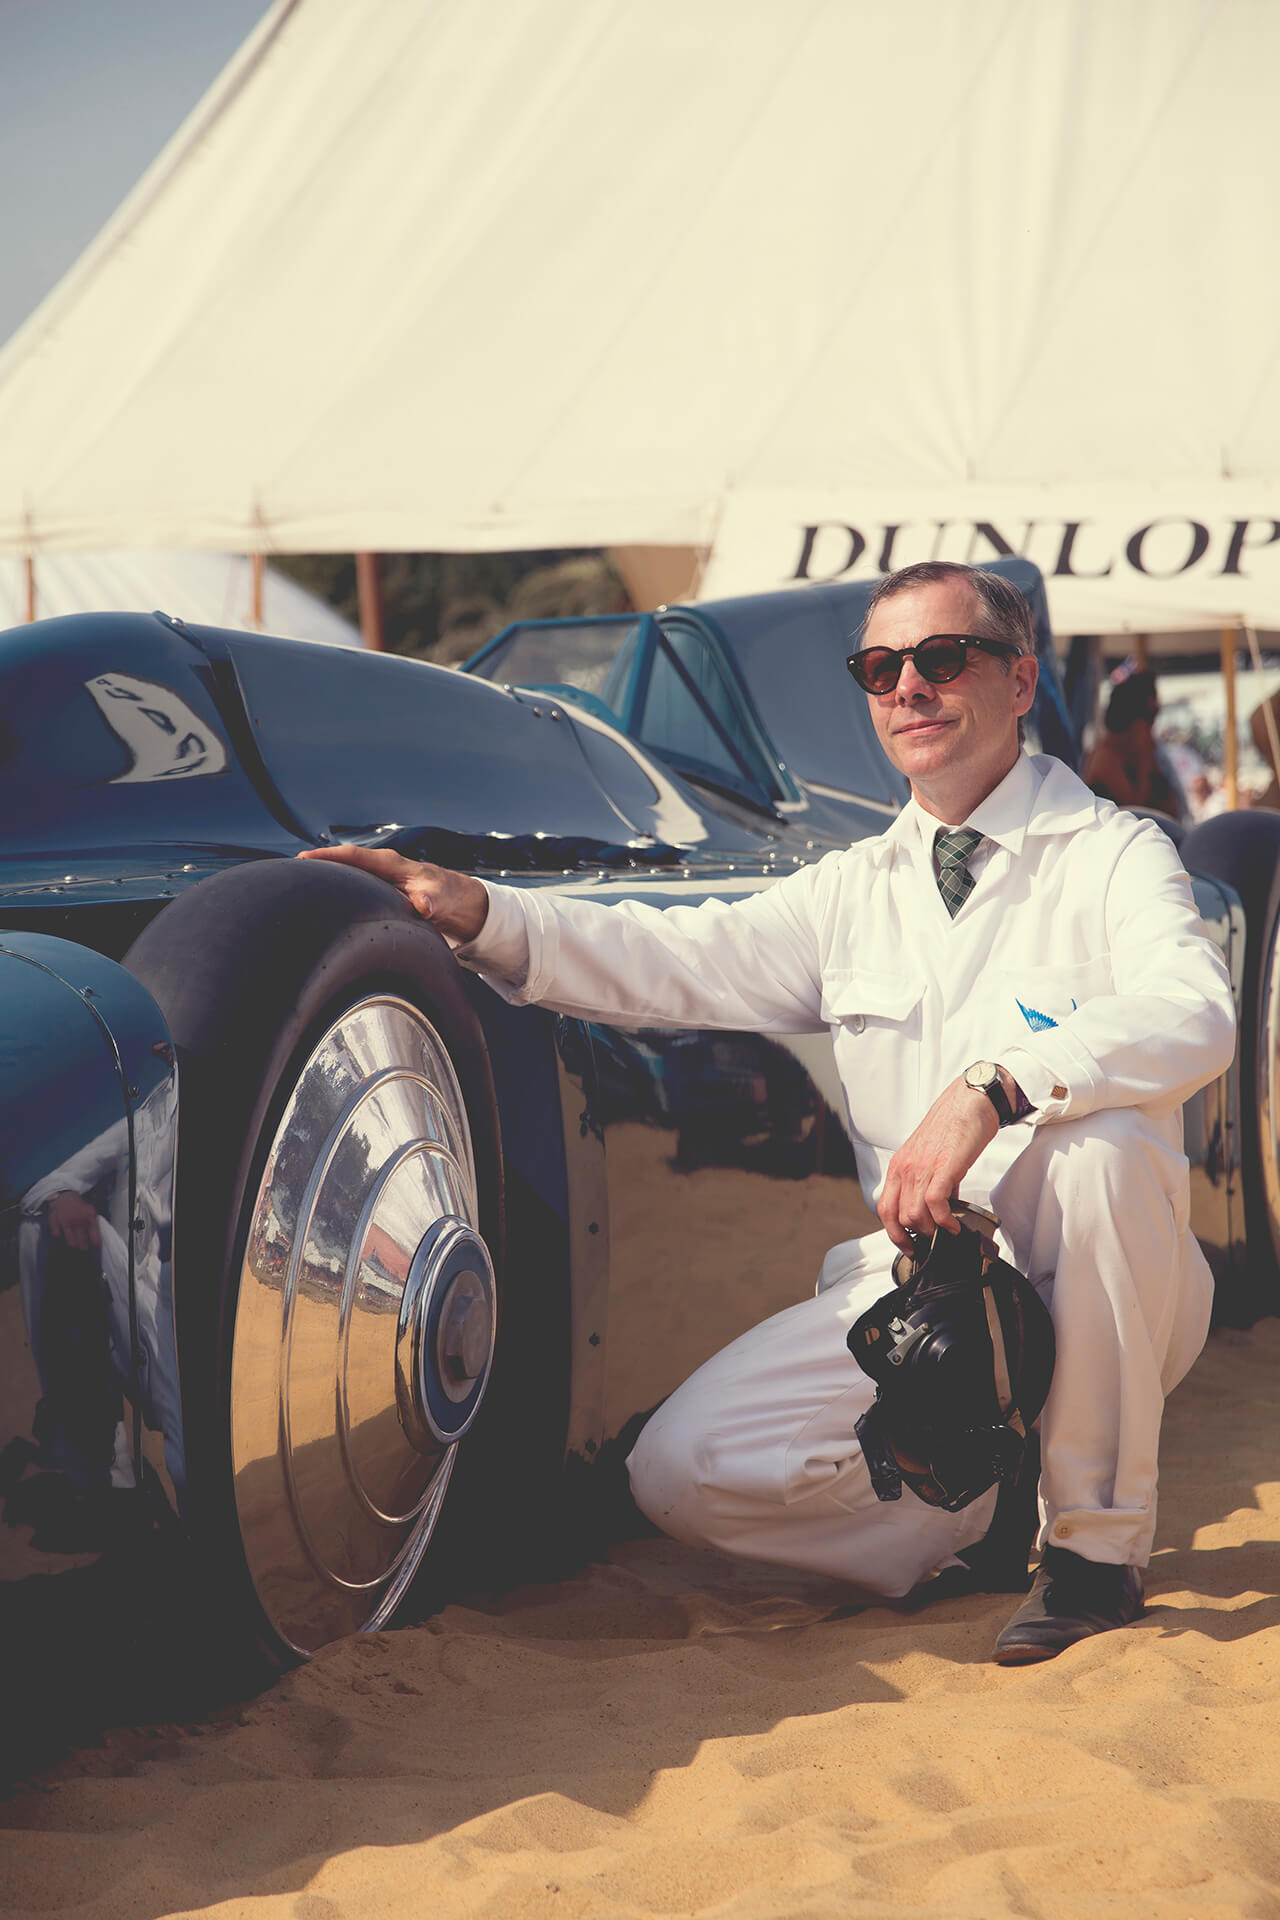 Bluebird, Colin Campbell, Goodwood Festival of Speed, Photography, Cars, Film, WeAreShuffle, Event, Agency